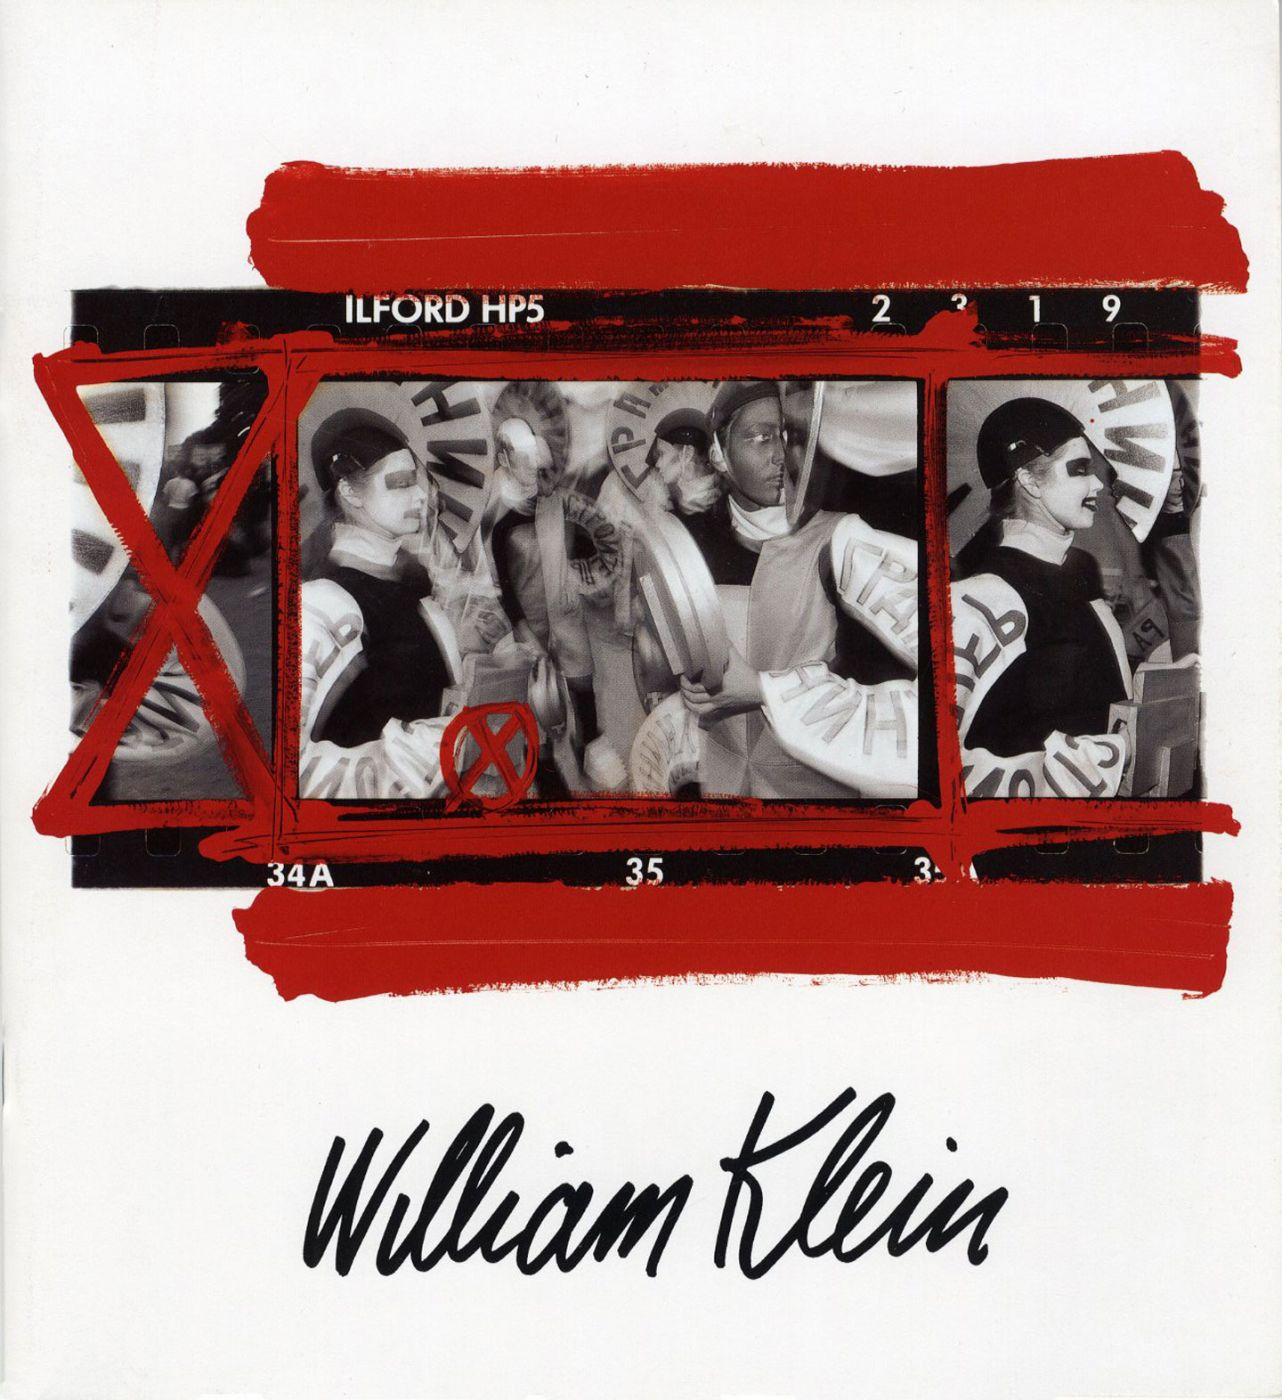 William Klein: Fotografier av årets Hasselbladspristagare (Photographs by the 1990 Hasselblad Prizewinner)